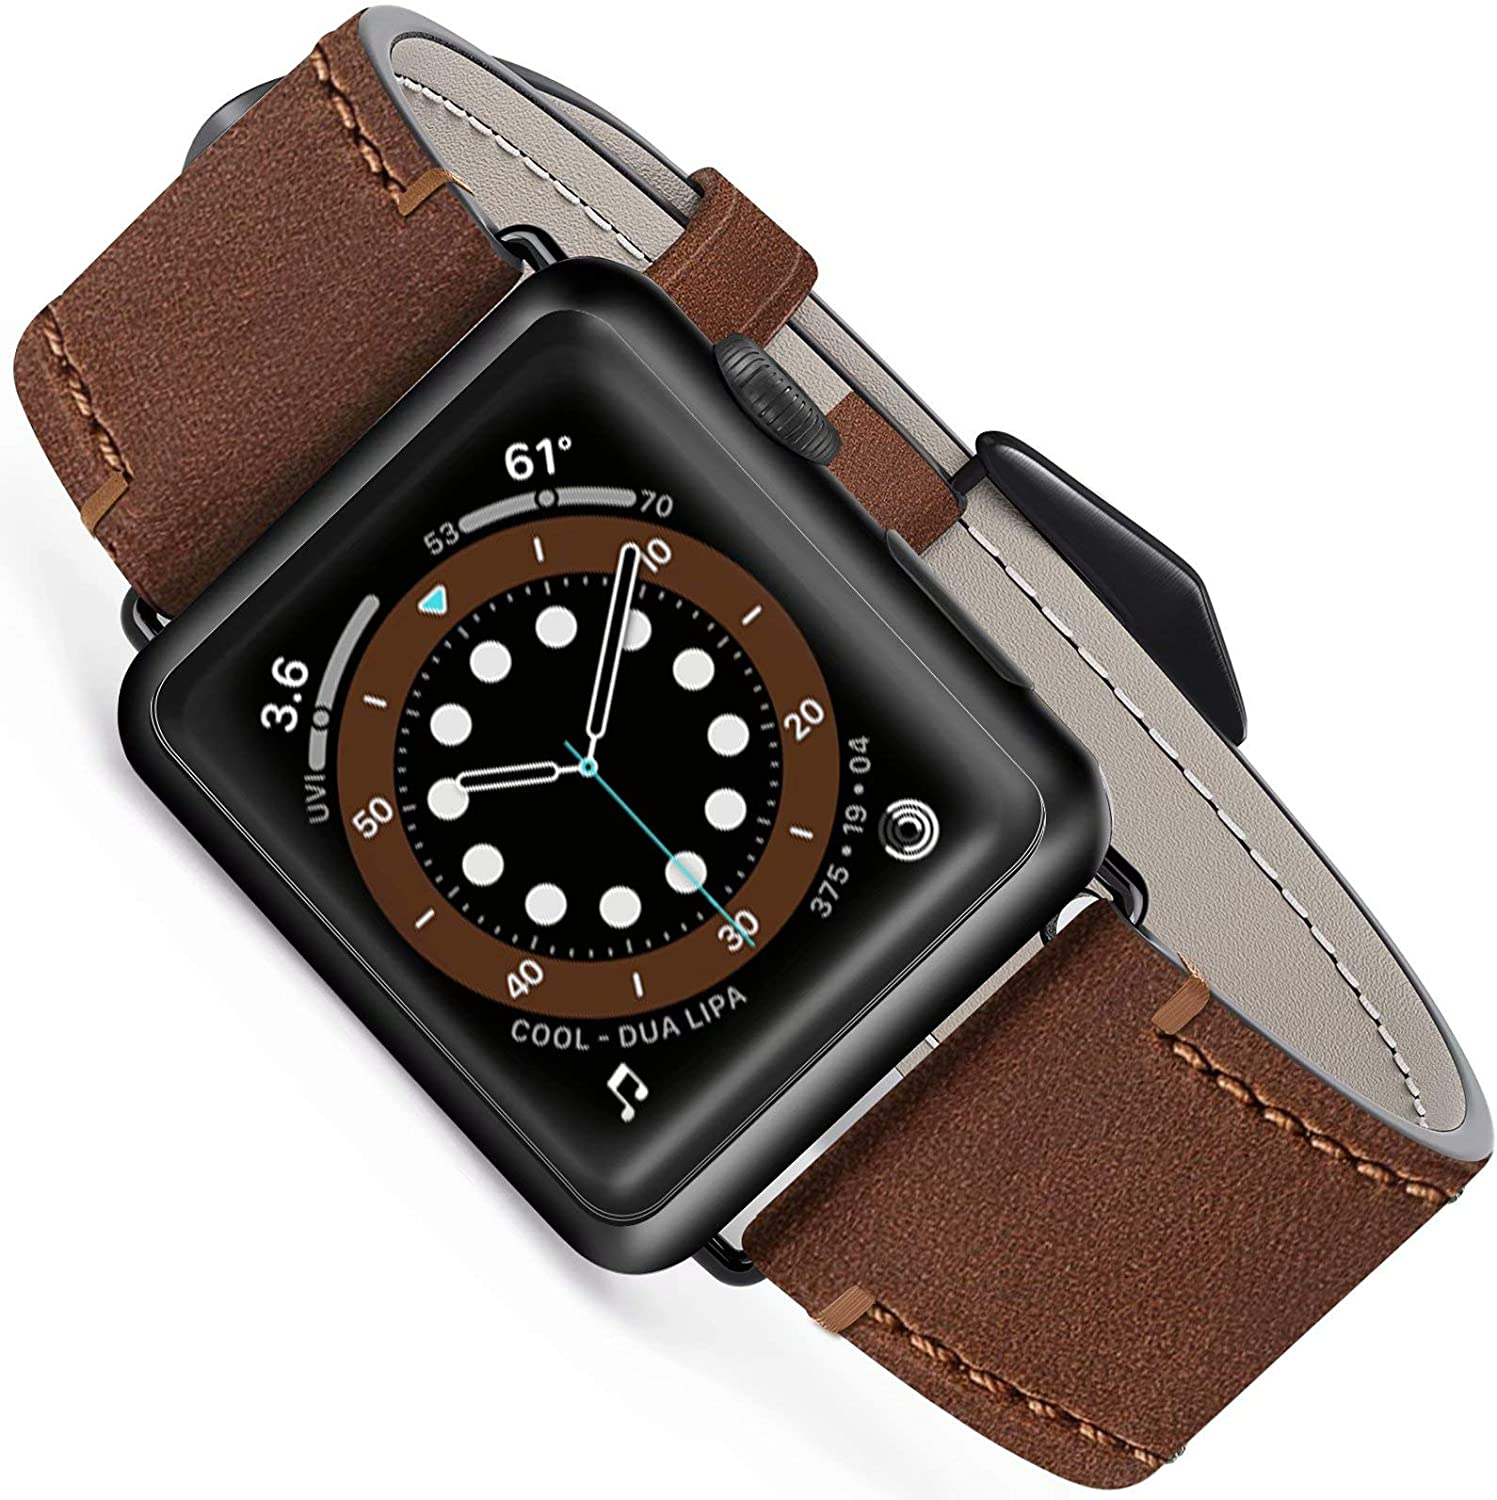 Geoumy Leather Band Compatible for Apple Watch Band SE Series 6 44mm 42mm, Genuine Men Leather Vintage Replacement Strap Classic Bands Buckle Compatible with iWatch 6/5/4/3/2/1